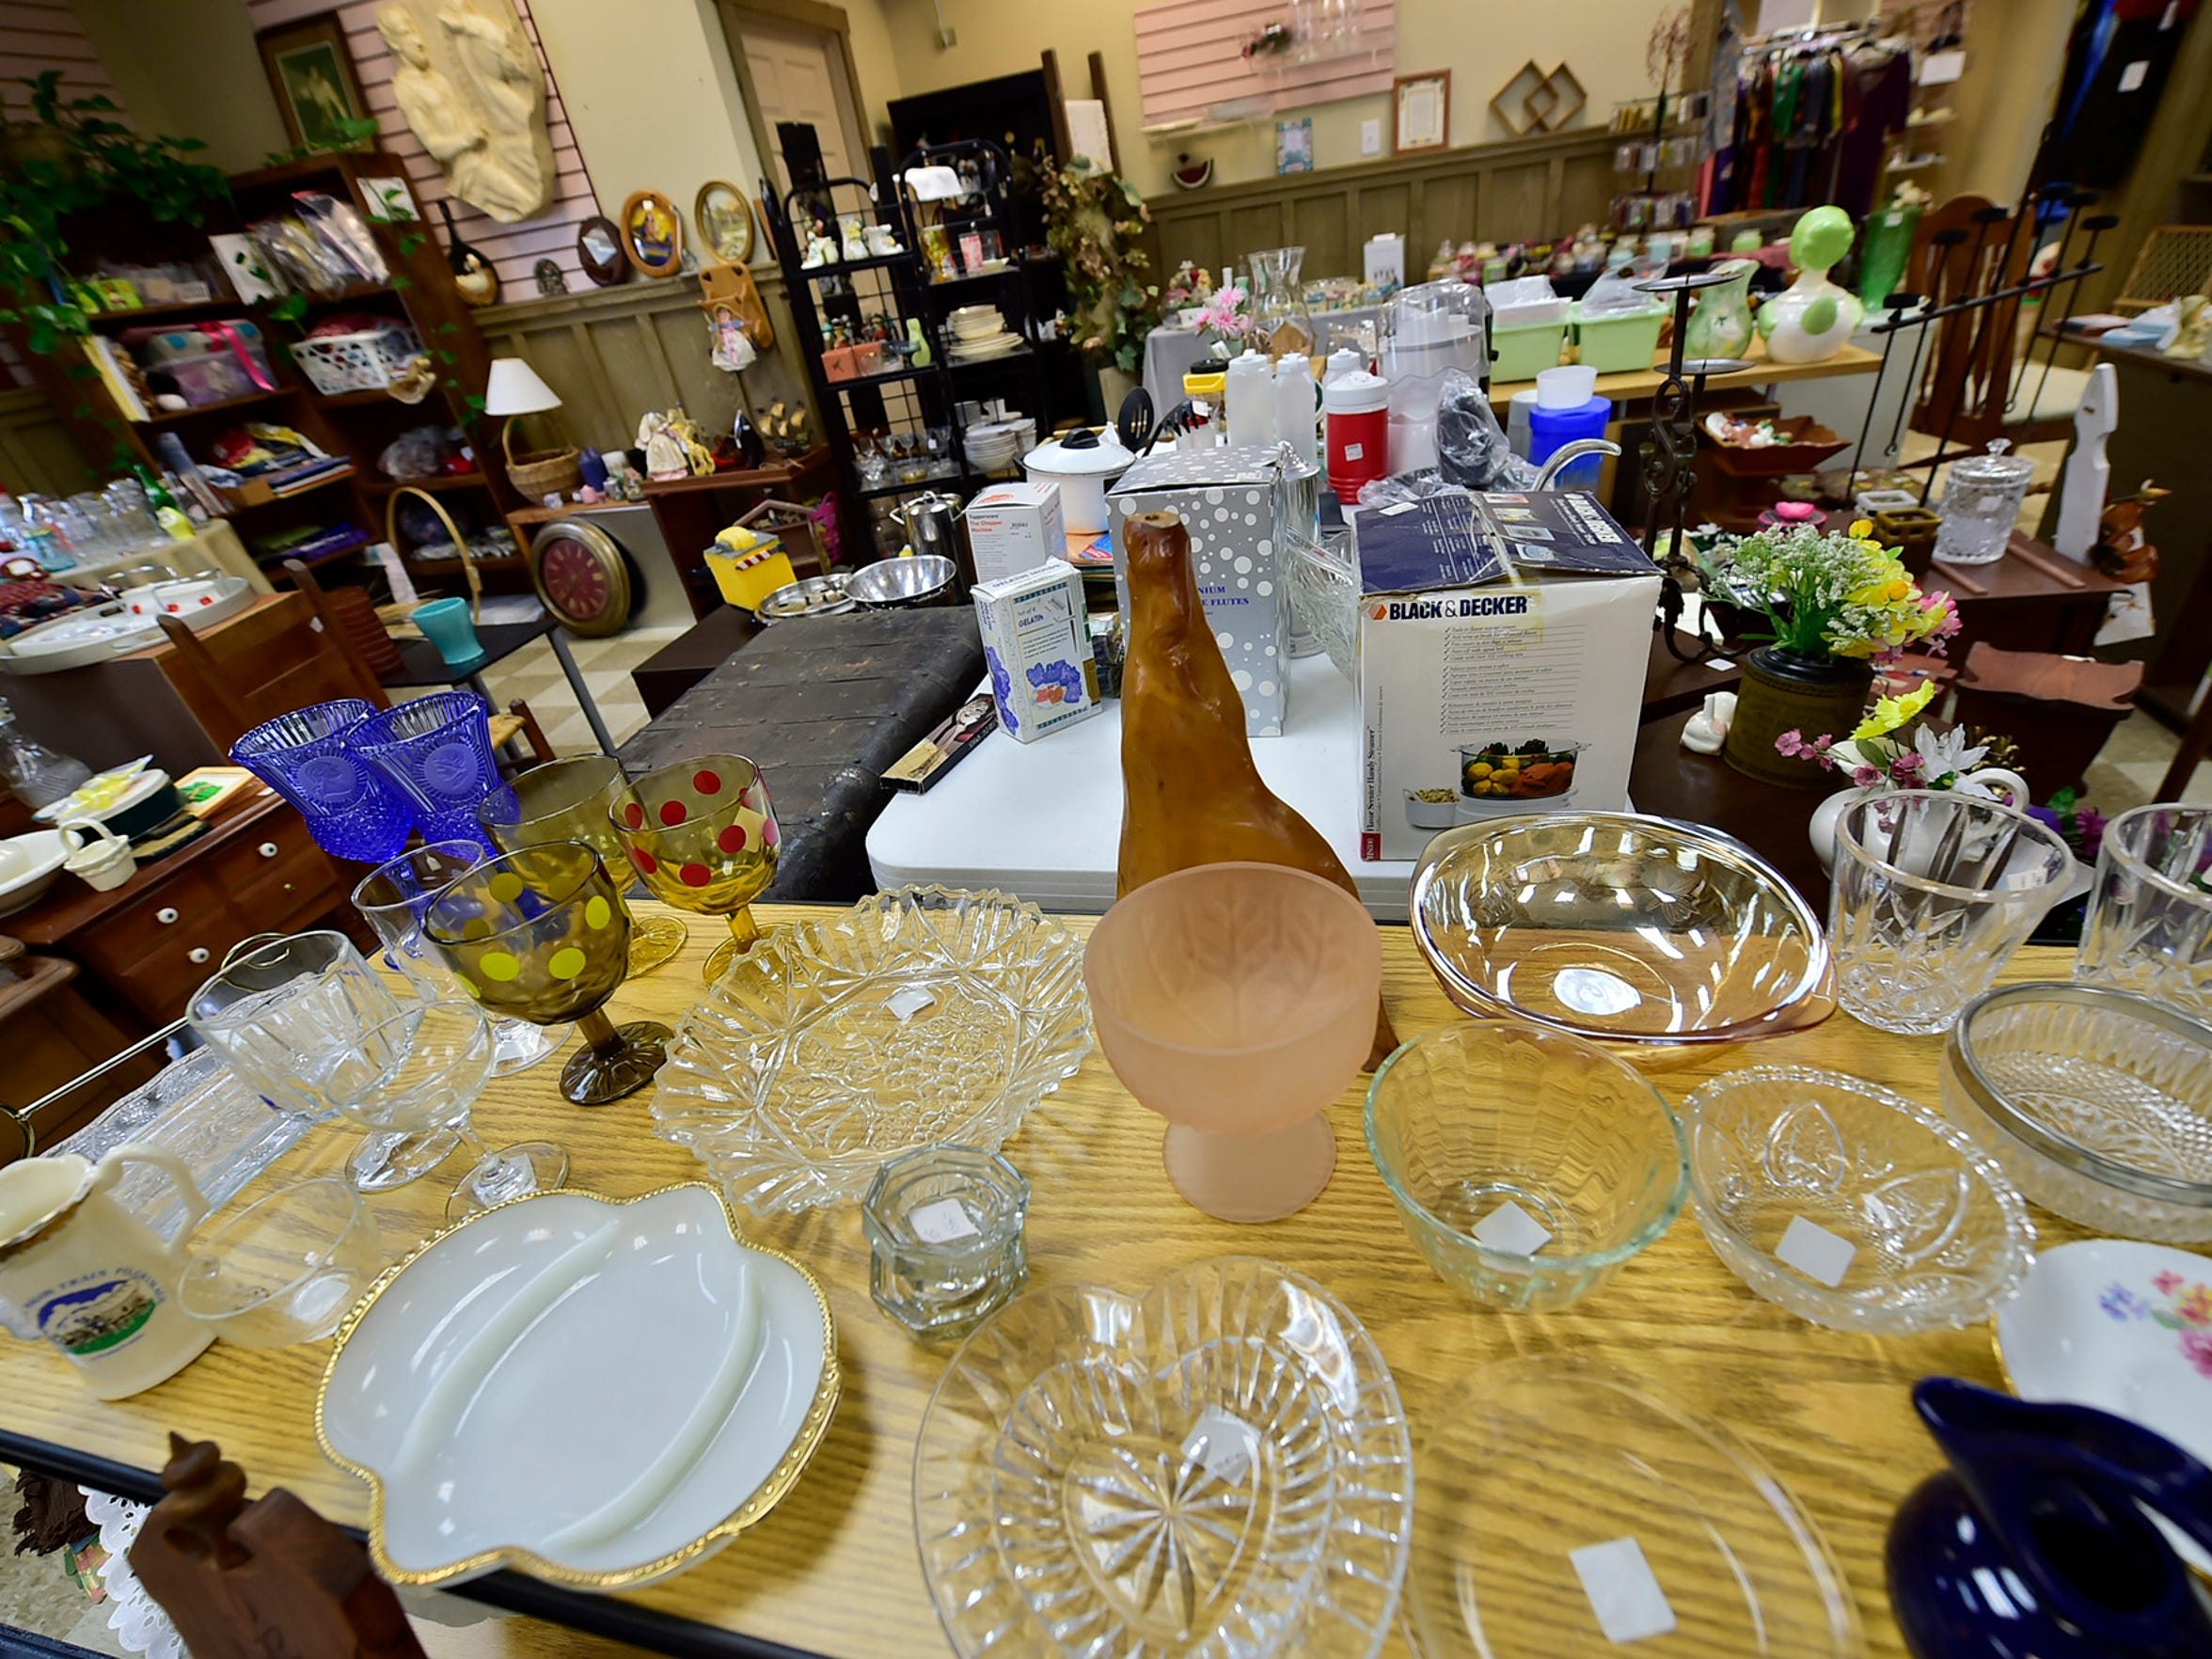 Upscale Consignment Shop is located at 24 W. Franklin Street, Greencastle.